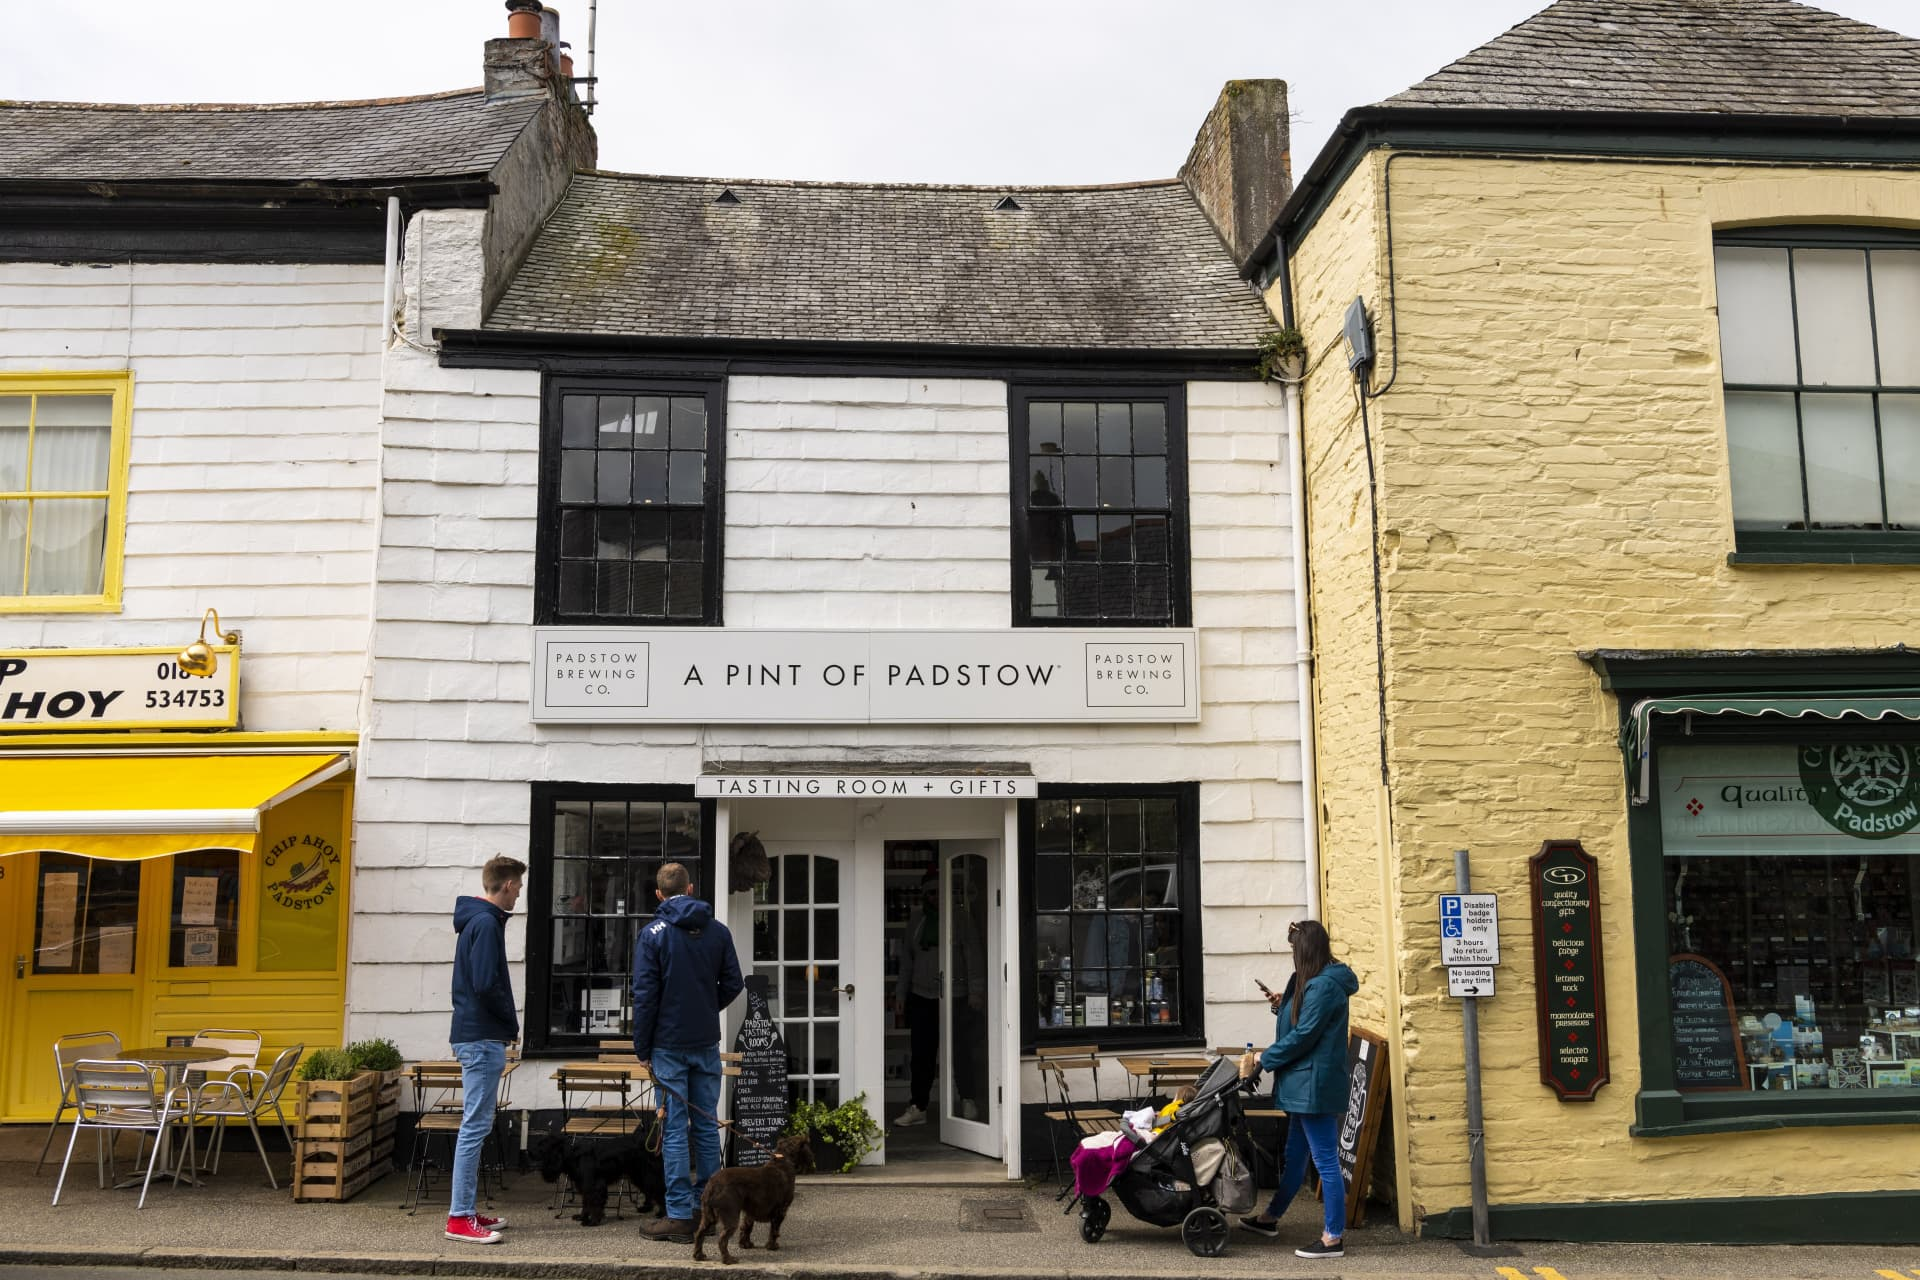 Lovers of craft beer are not ignored in Padstow and can get a pint of beer at numerous pubs.